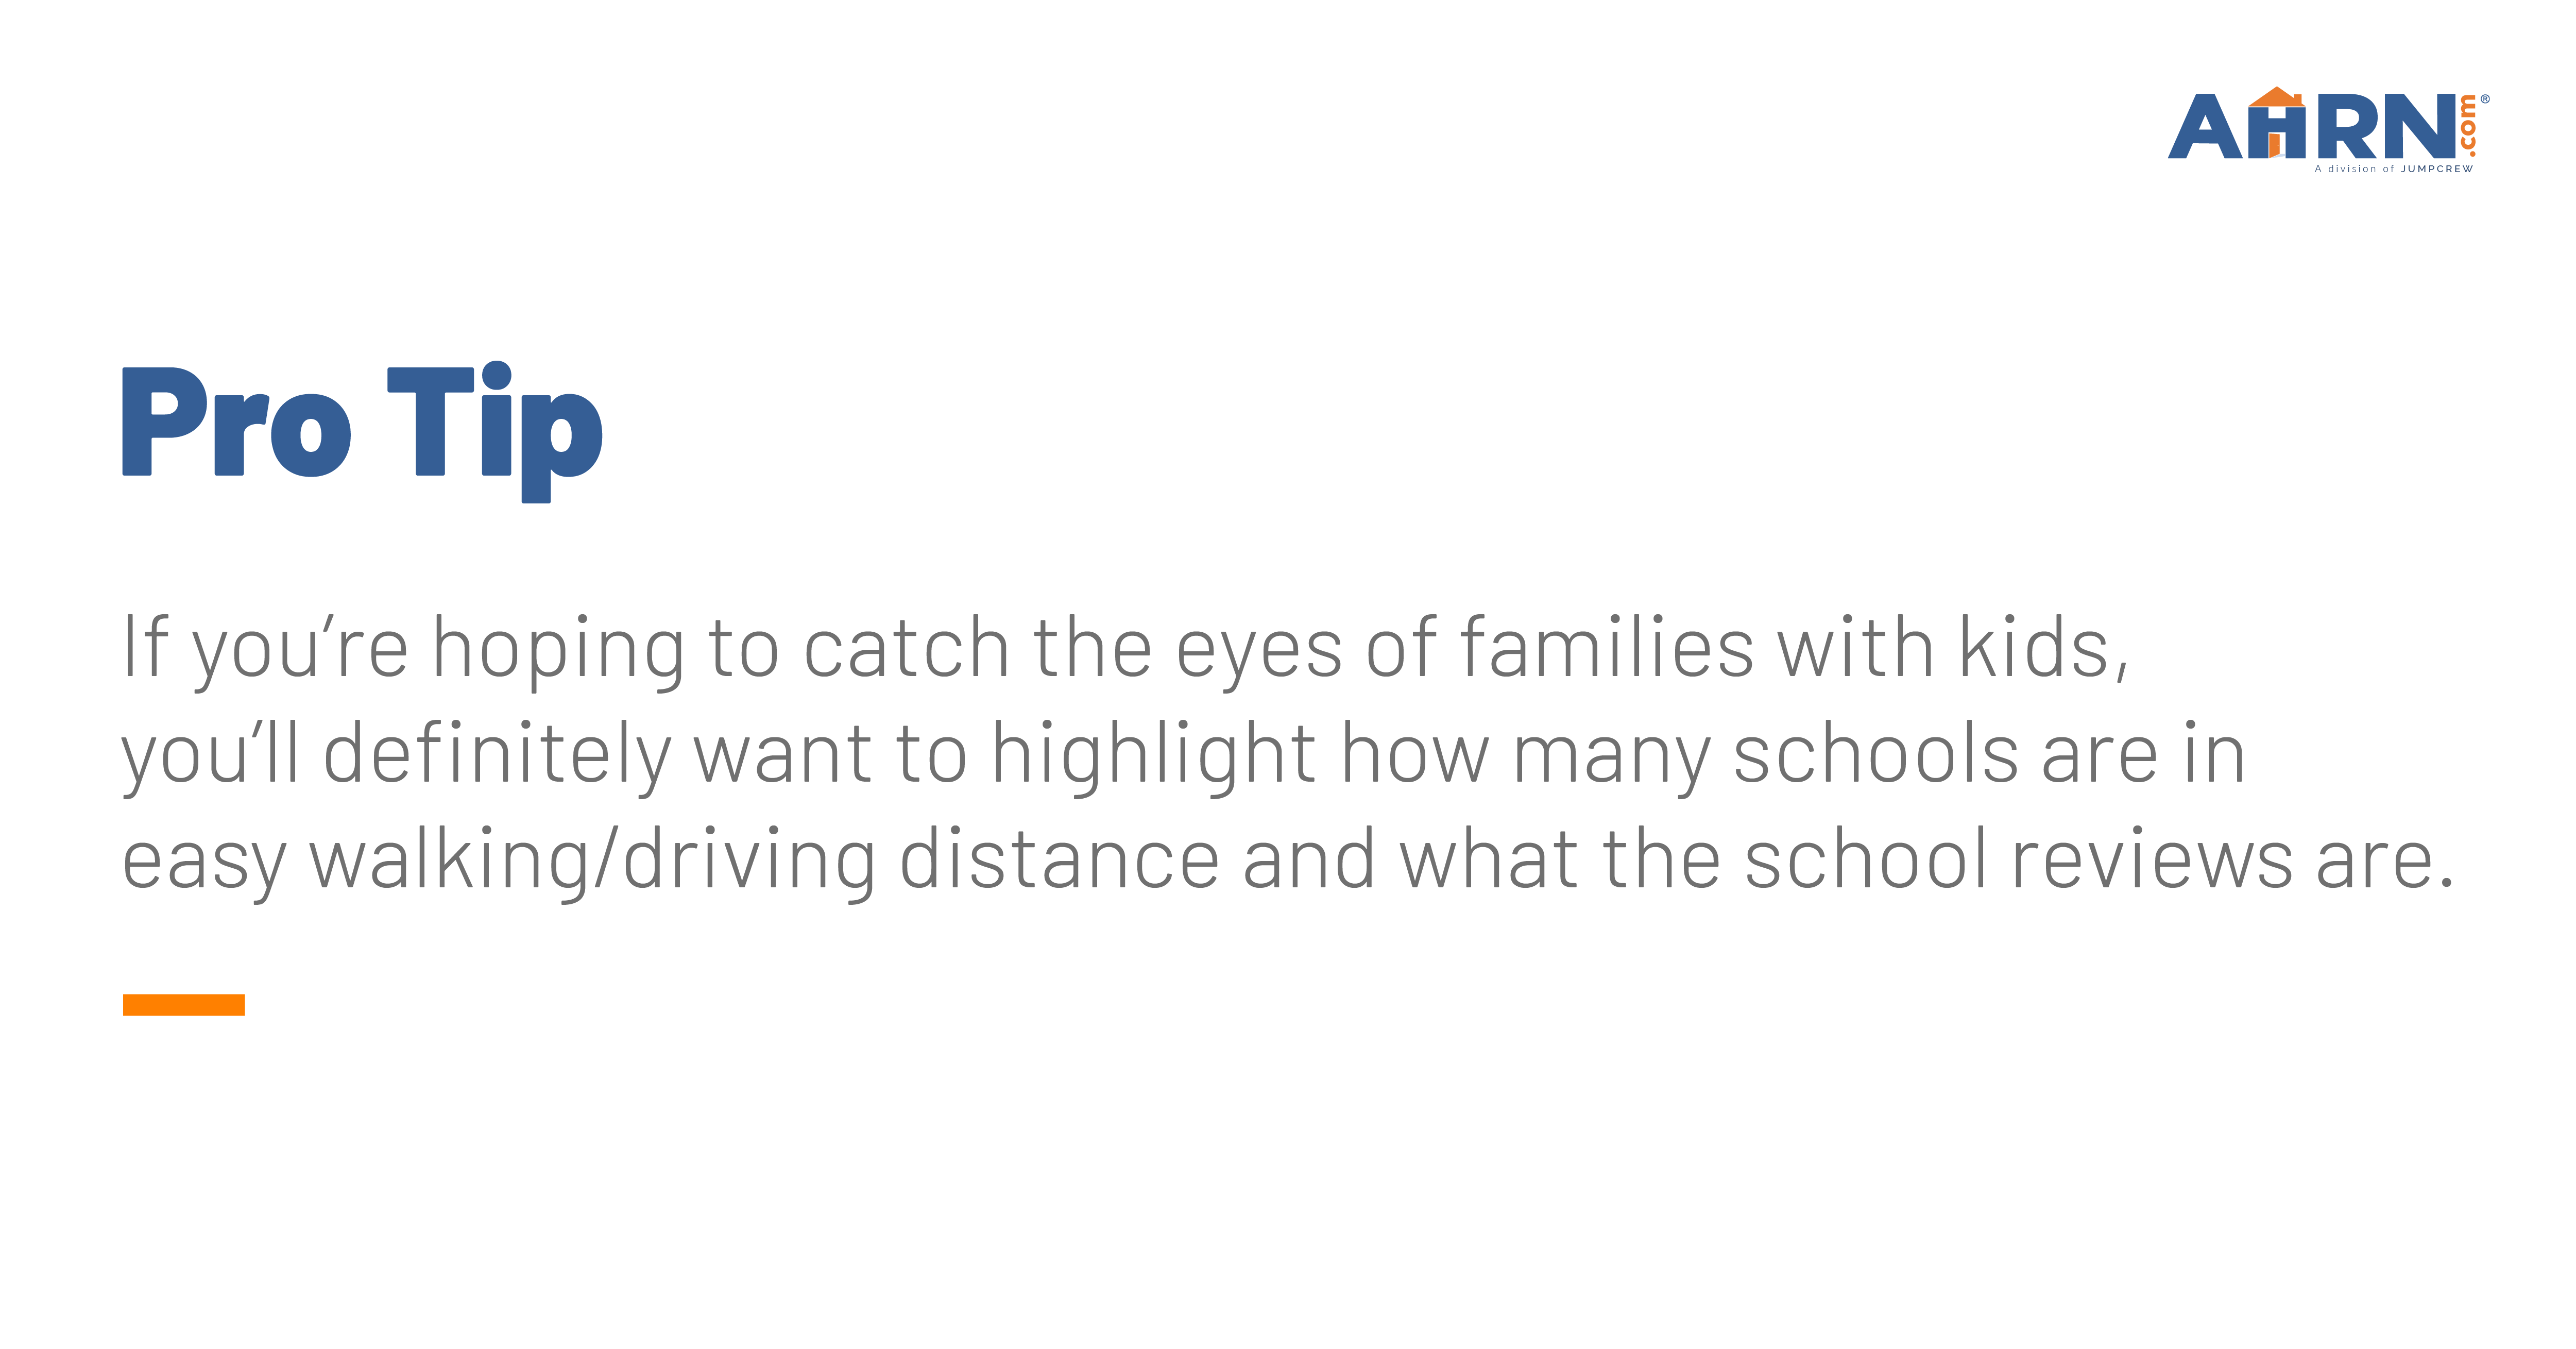 Pro Tip: If you're hoping to catch the eyes of families with kids, you'll definitely want to highlight how many schools are in easy walking/driving distance and what the school reviews are.